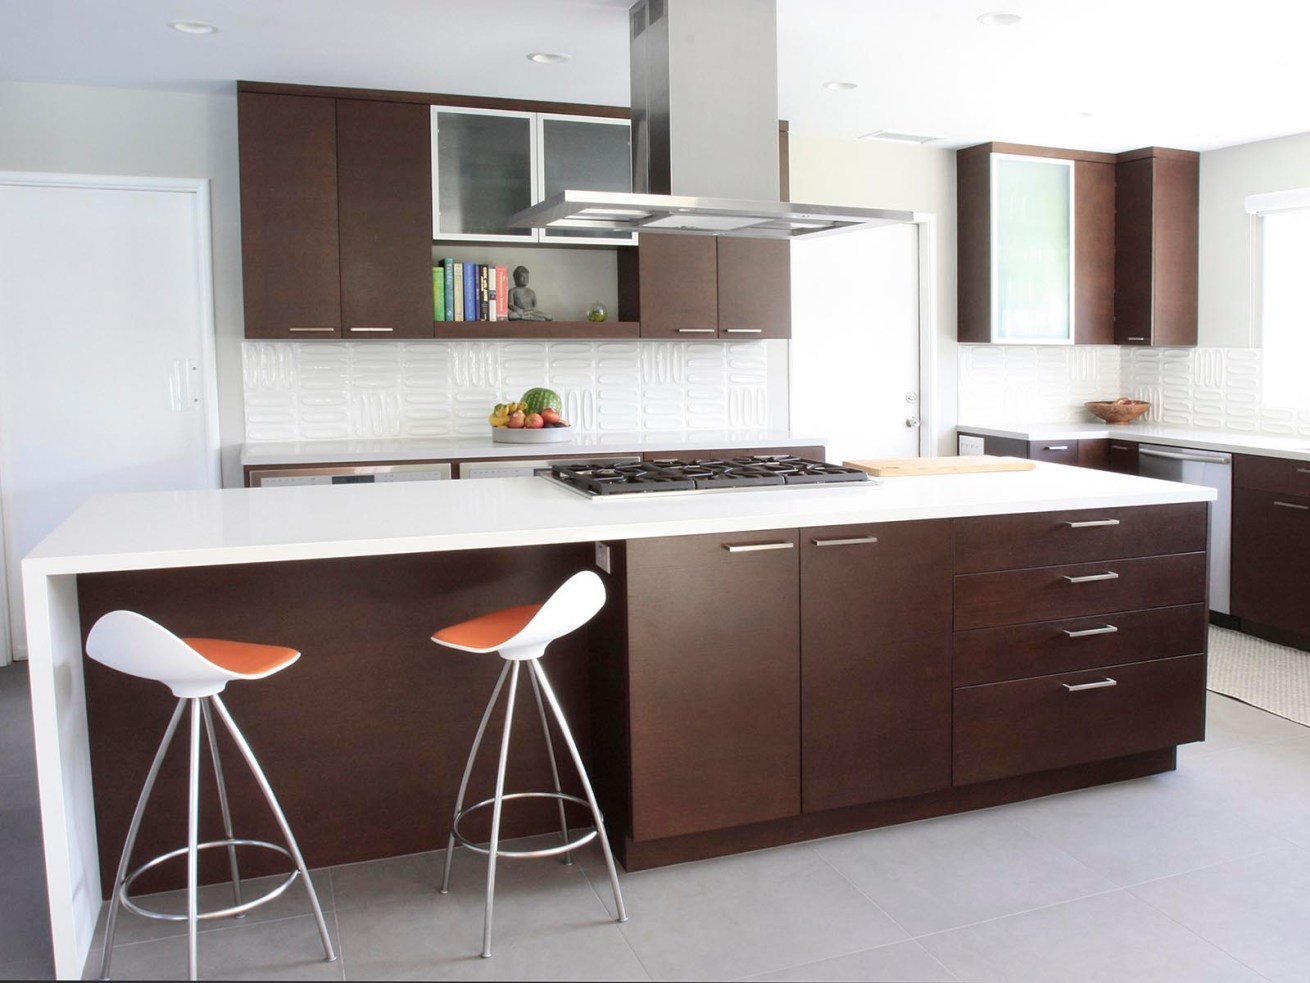 Matte Facade Kitchen Furniture with Acrylic Countertop